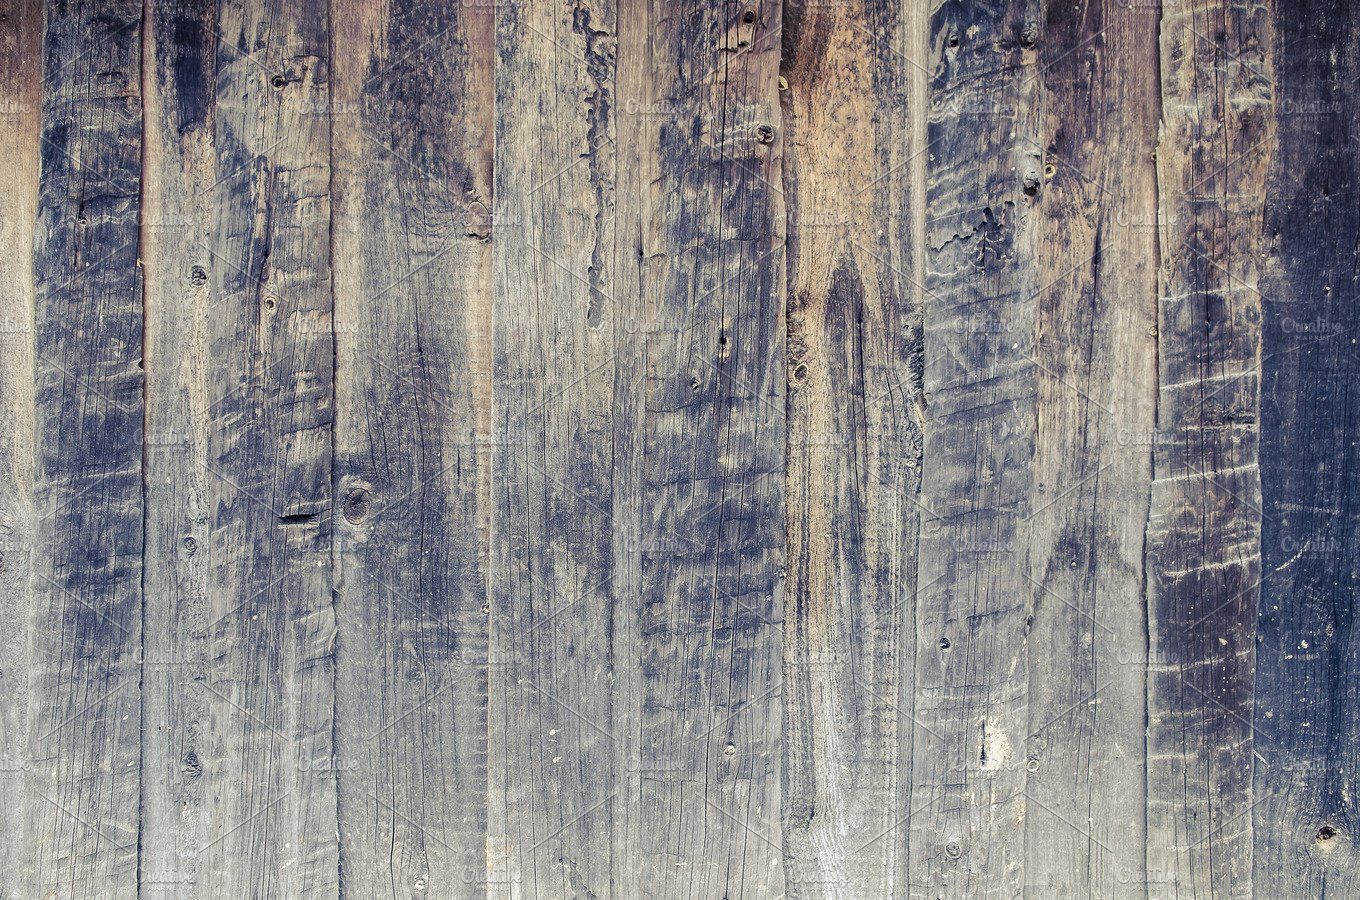 Rustic wooden boards texture abstract photos creative